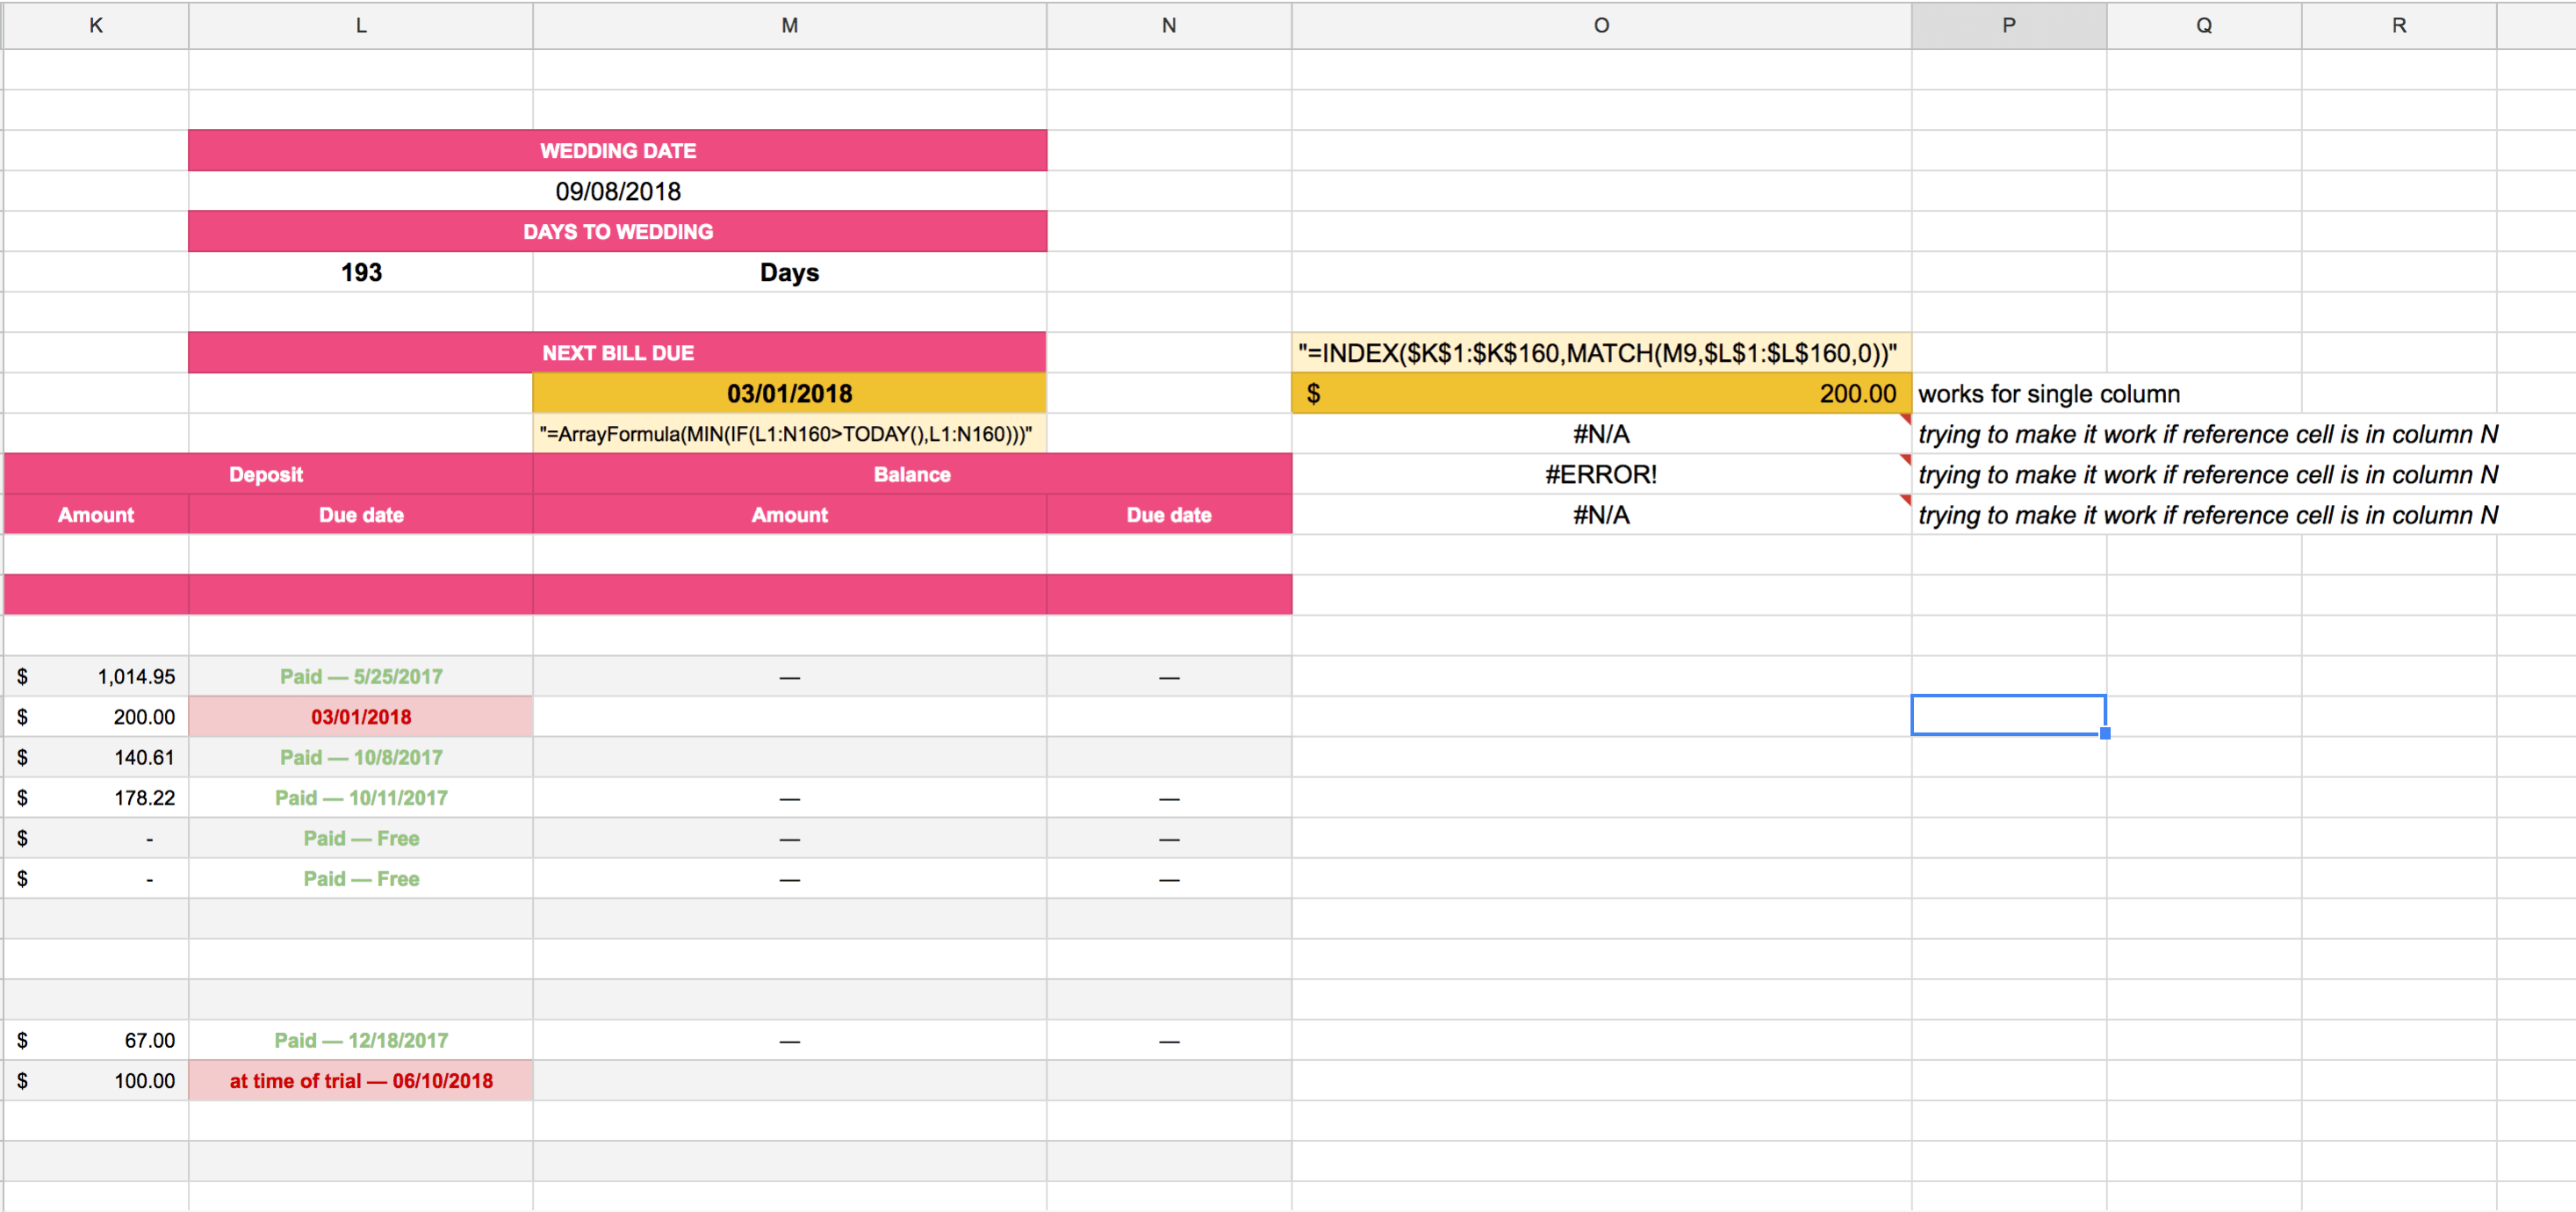 How To Vlookup Values From Right To Left In Excel